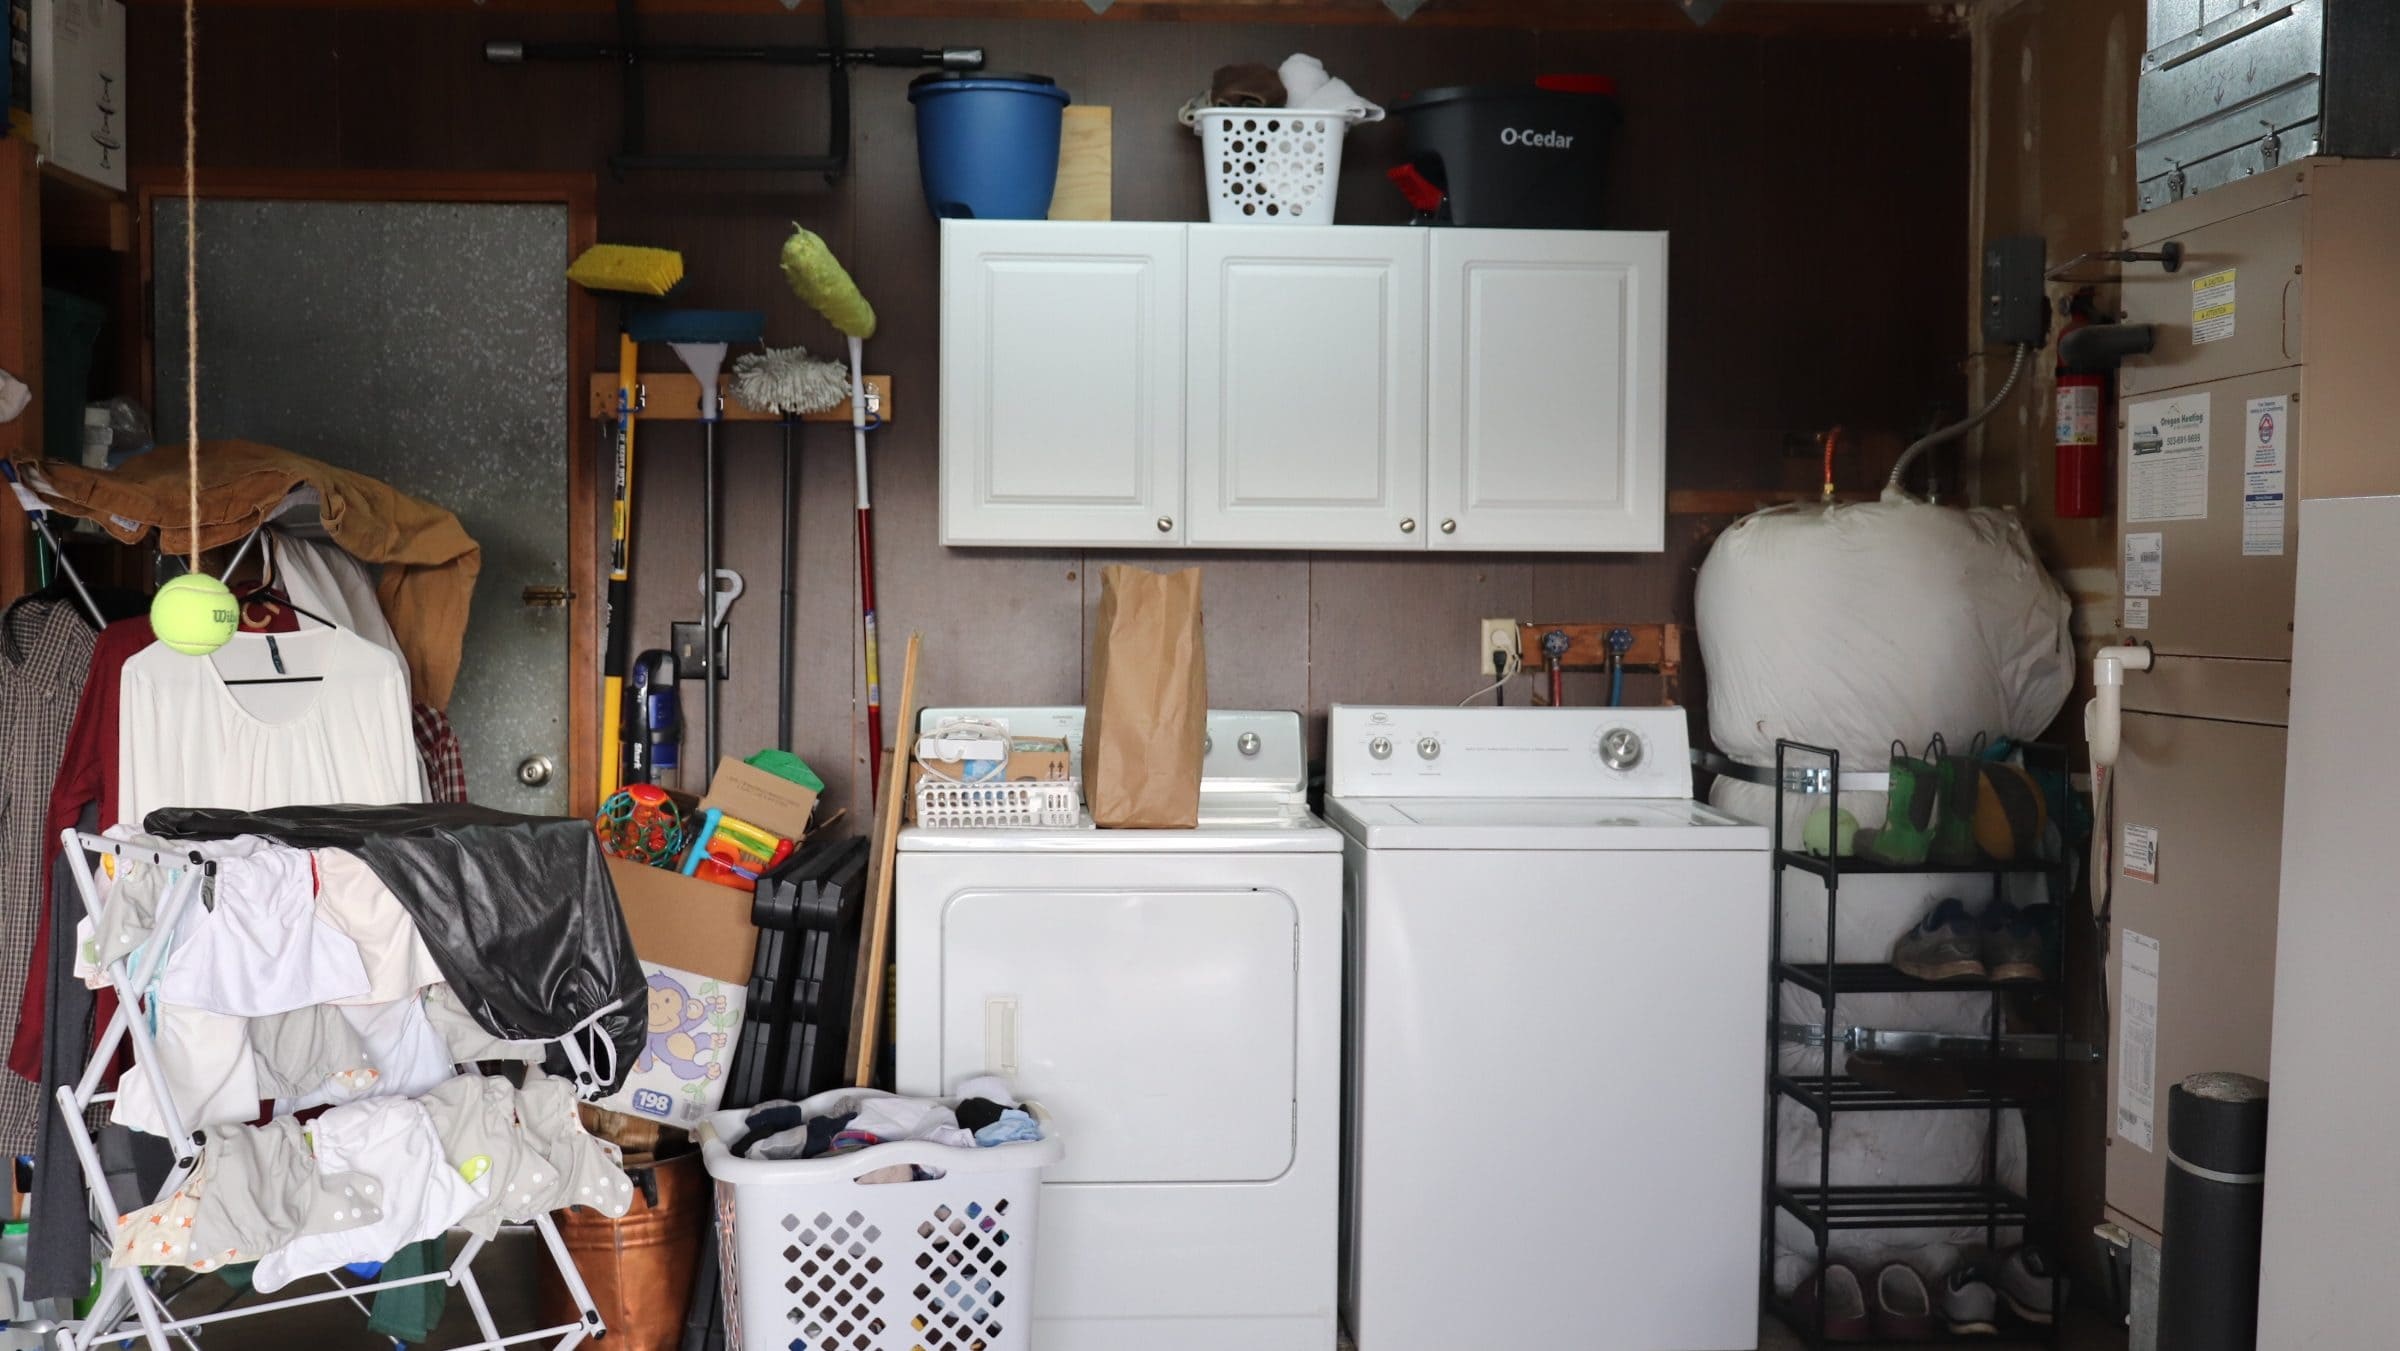 cluttered garage with white wall cabinets, hanging laundry, washer and dryer and water heater against a dark paneled wall